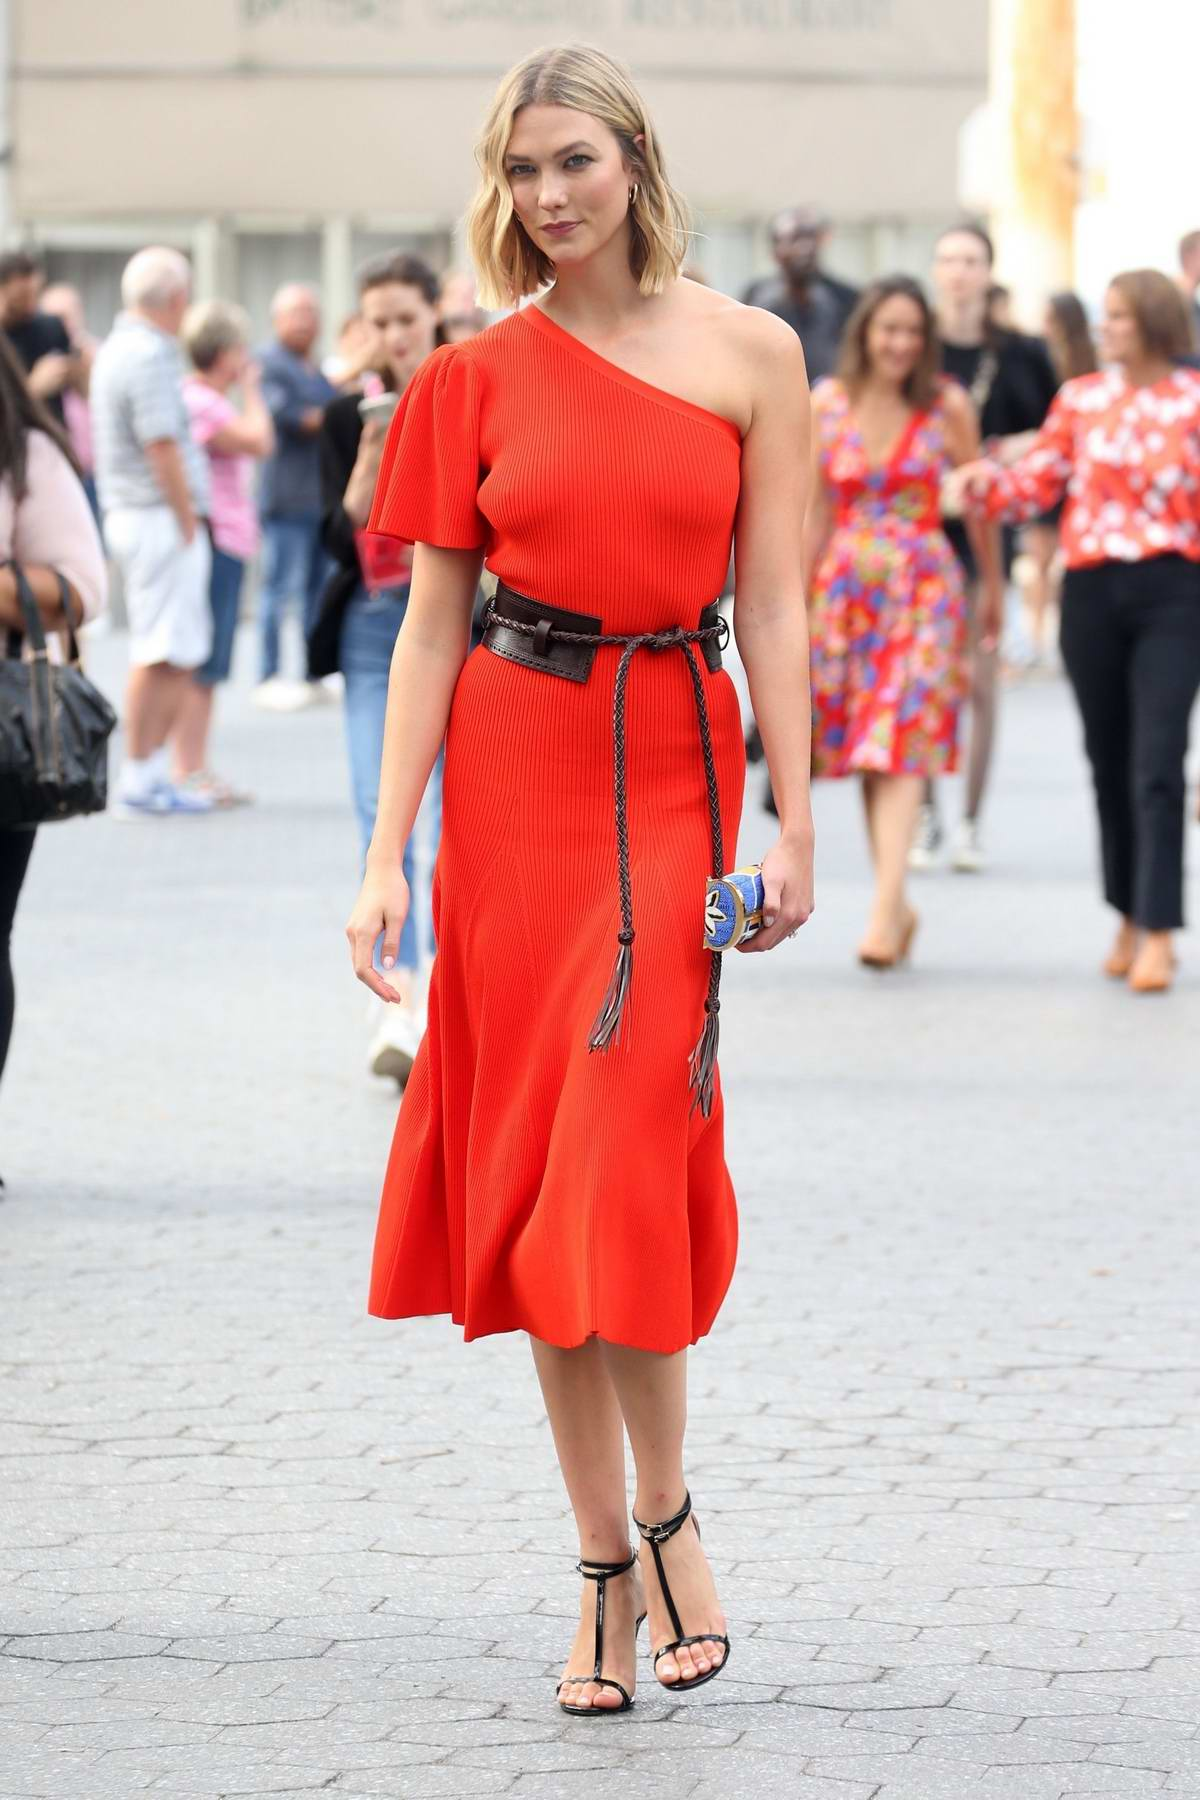 Karlie Kloss stuns in an orange dress while attending Carolina Herrera Show during New York Fashion Week in New York City